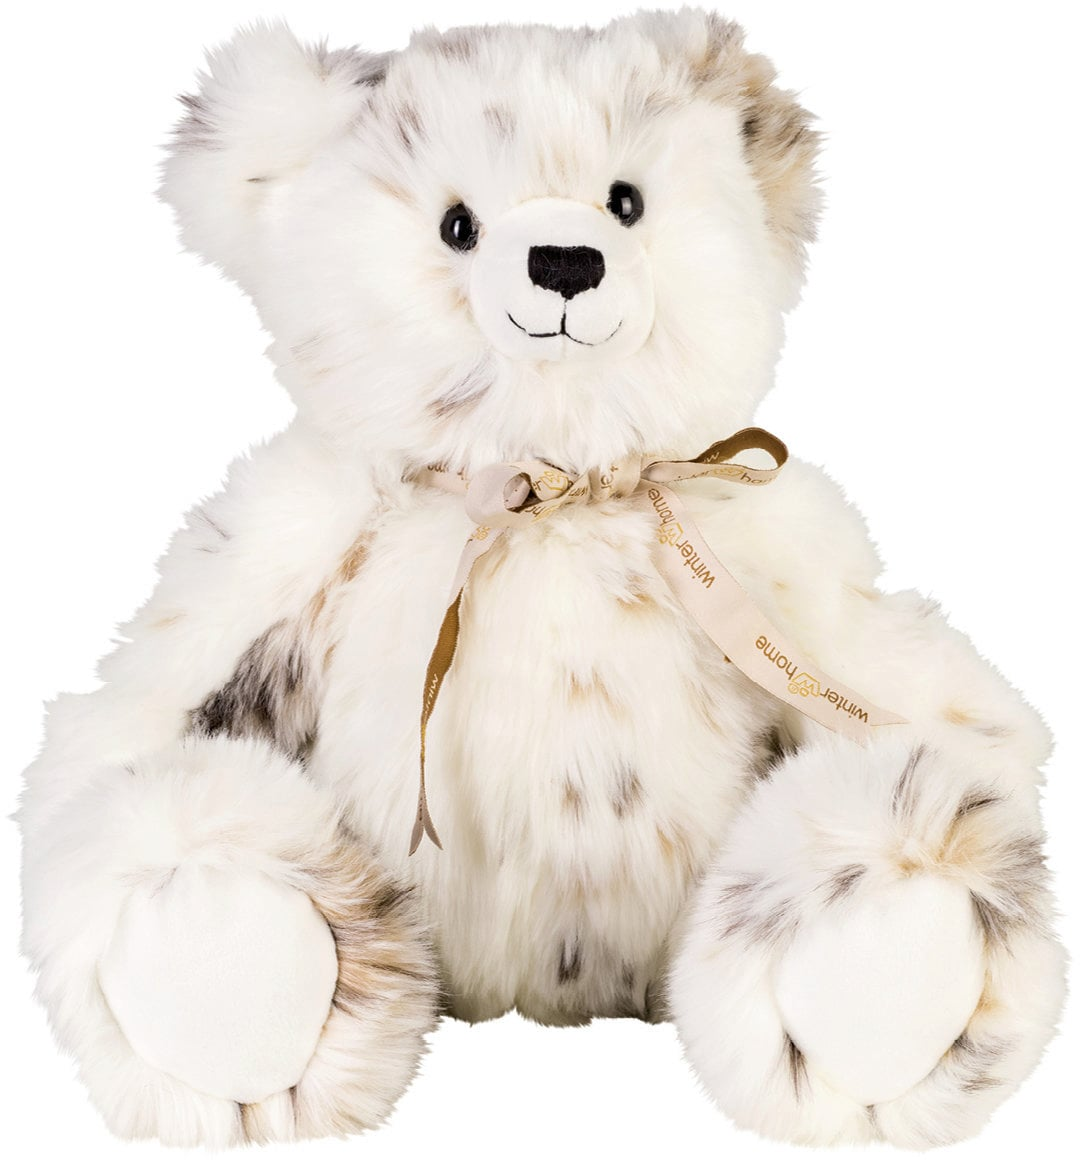 Poolpflege Im Winter Winter Home Teddy Lynx Interismo Onlineshop